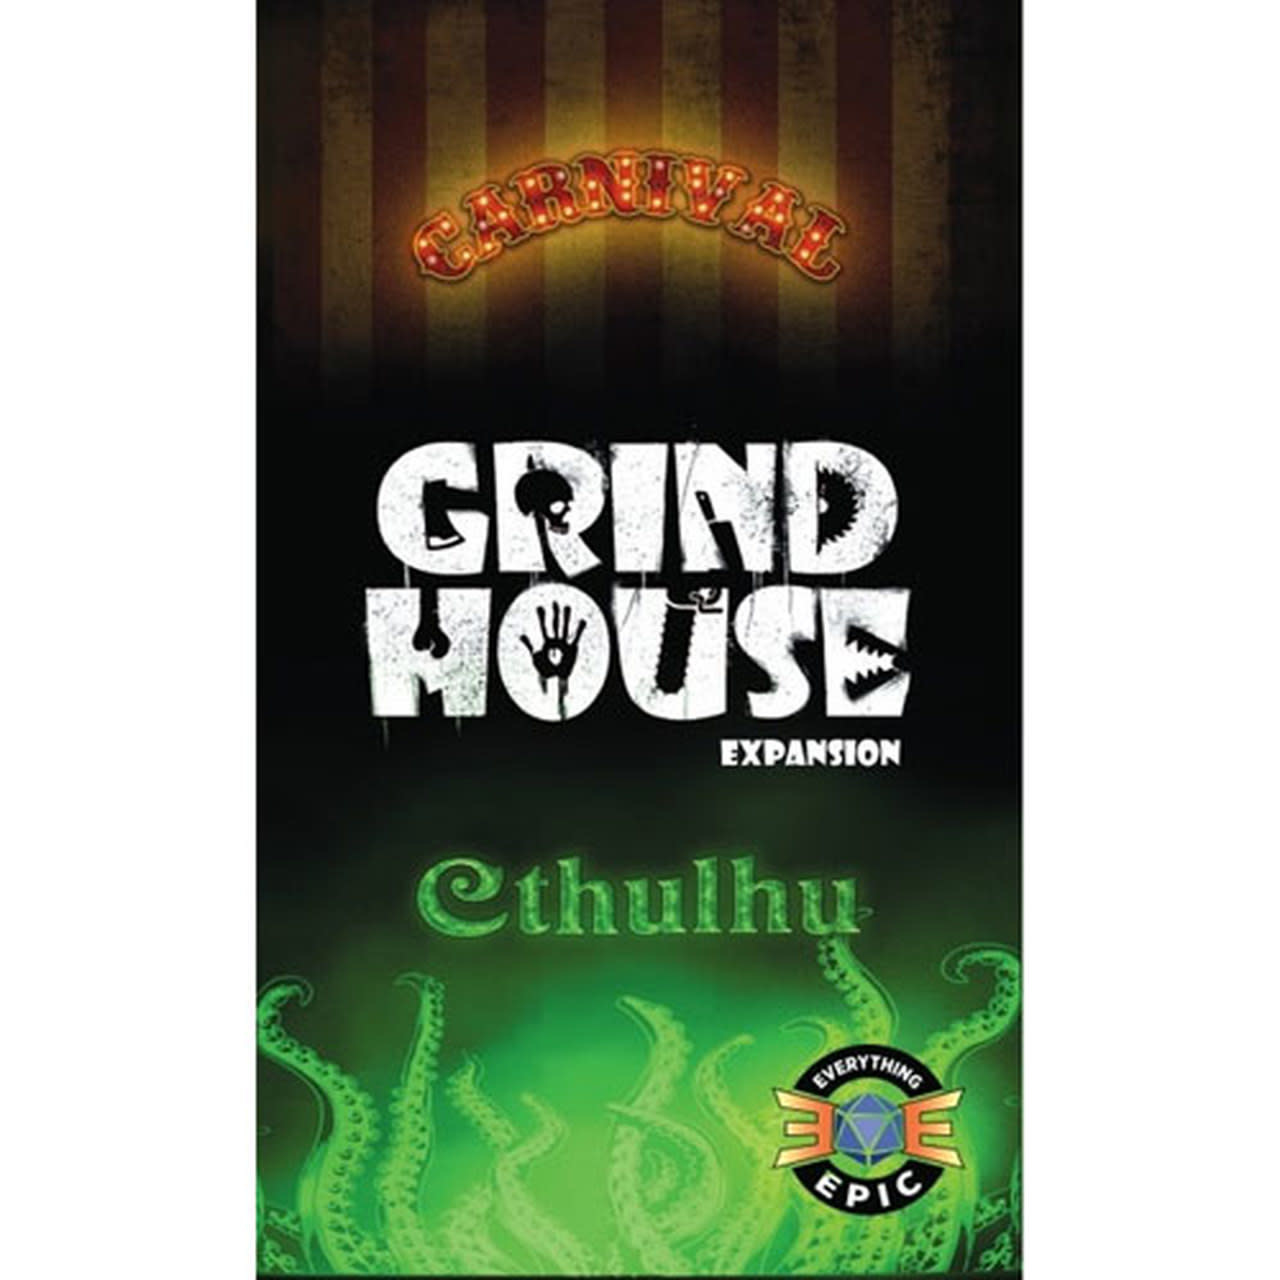 Grind House: Carnival and Cthulhu Exp.